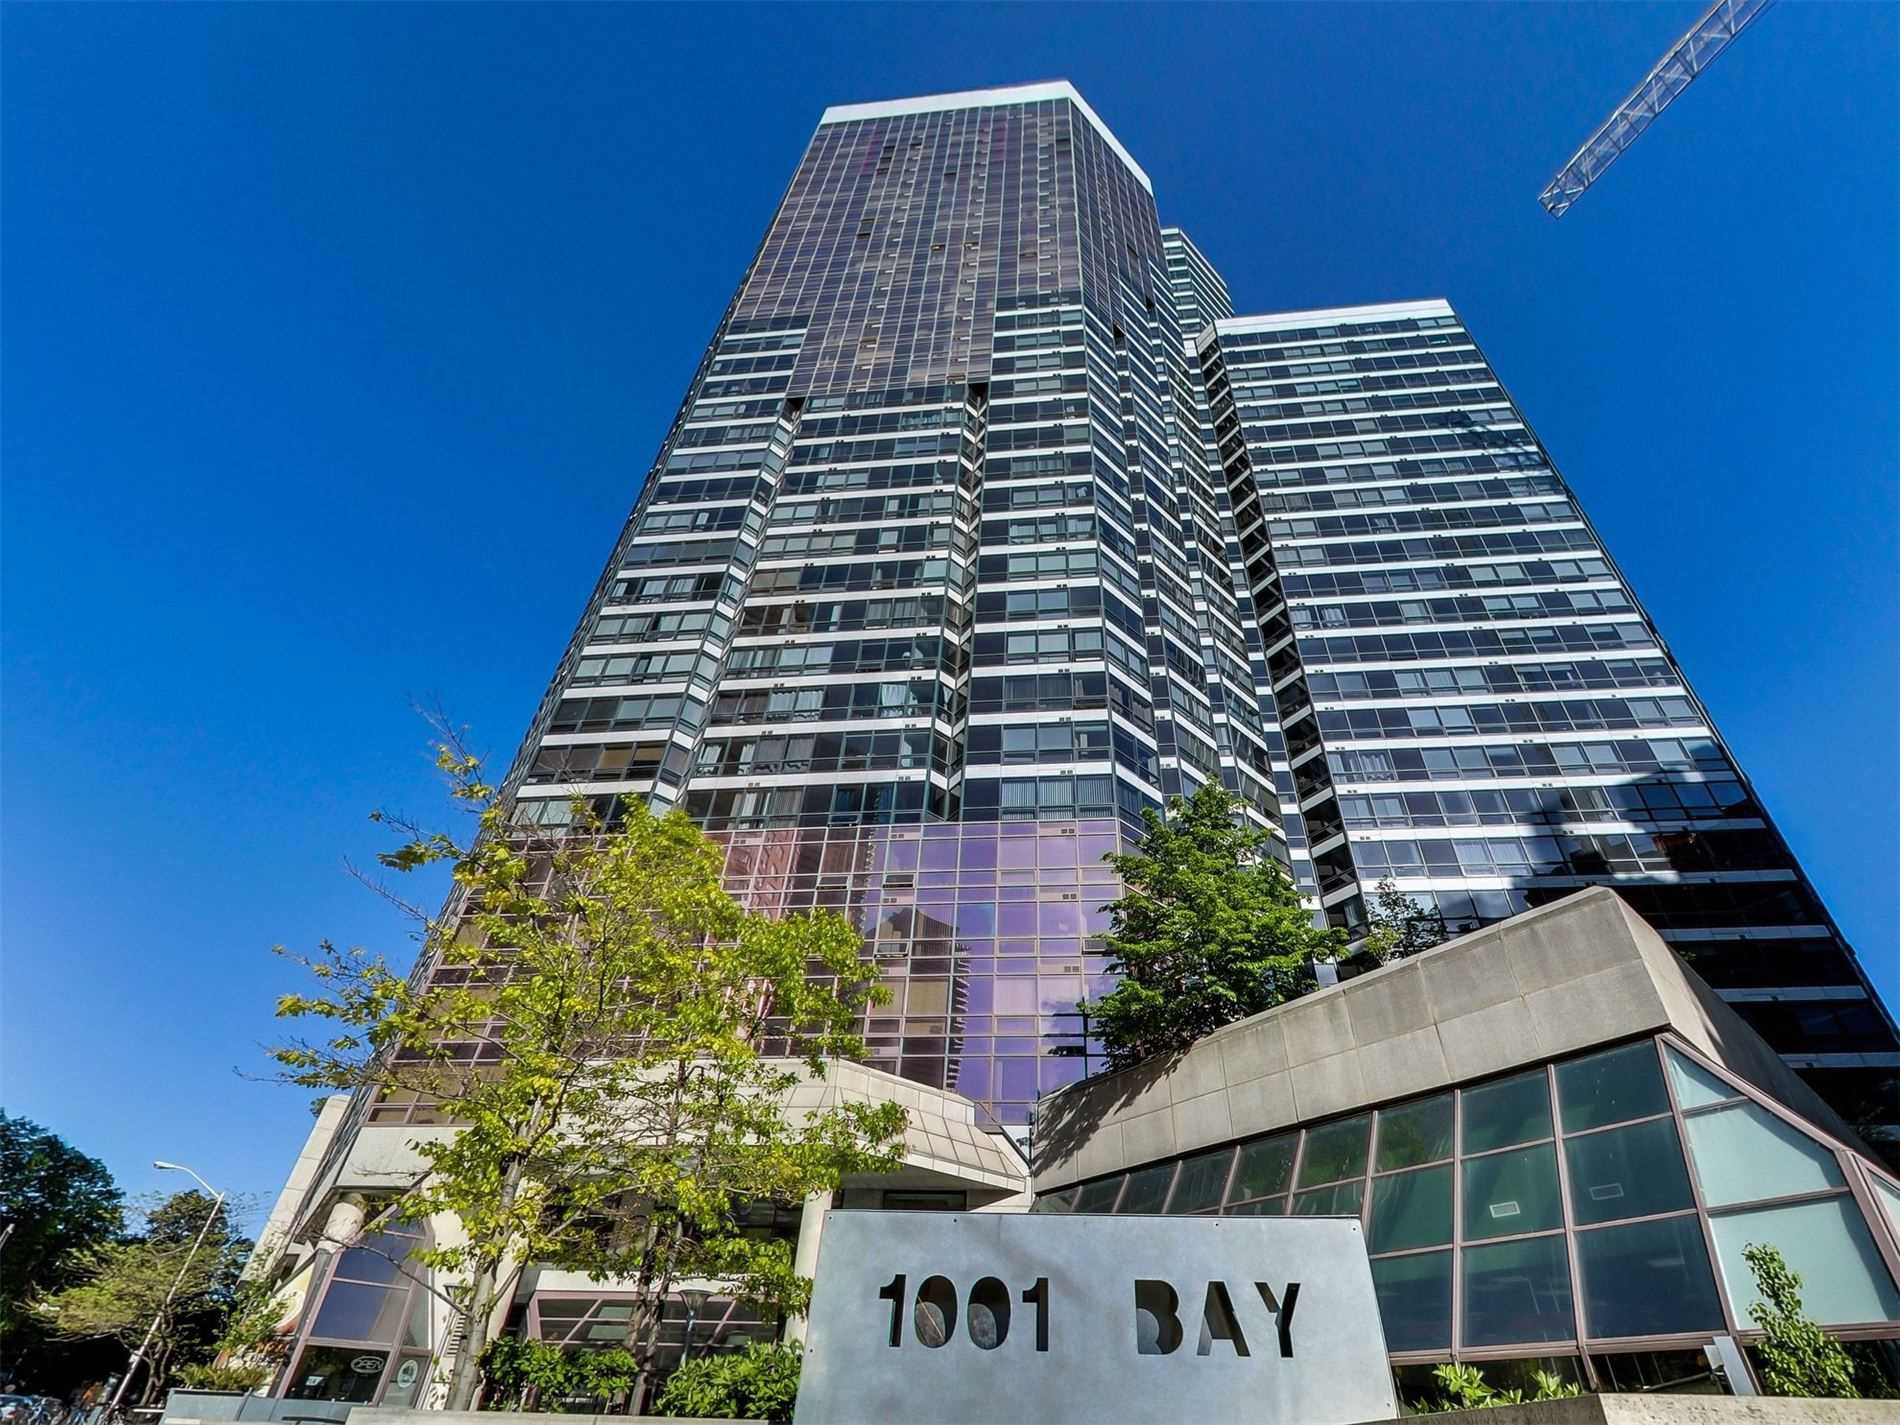 Main Photo: 813 1001 Bay Street in Toronto: Bay Street Corridor Condo for sale (Toronto C01)  : MLS®# C4706689